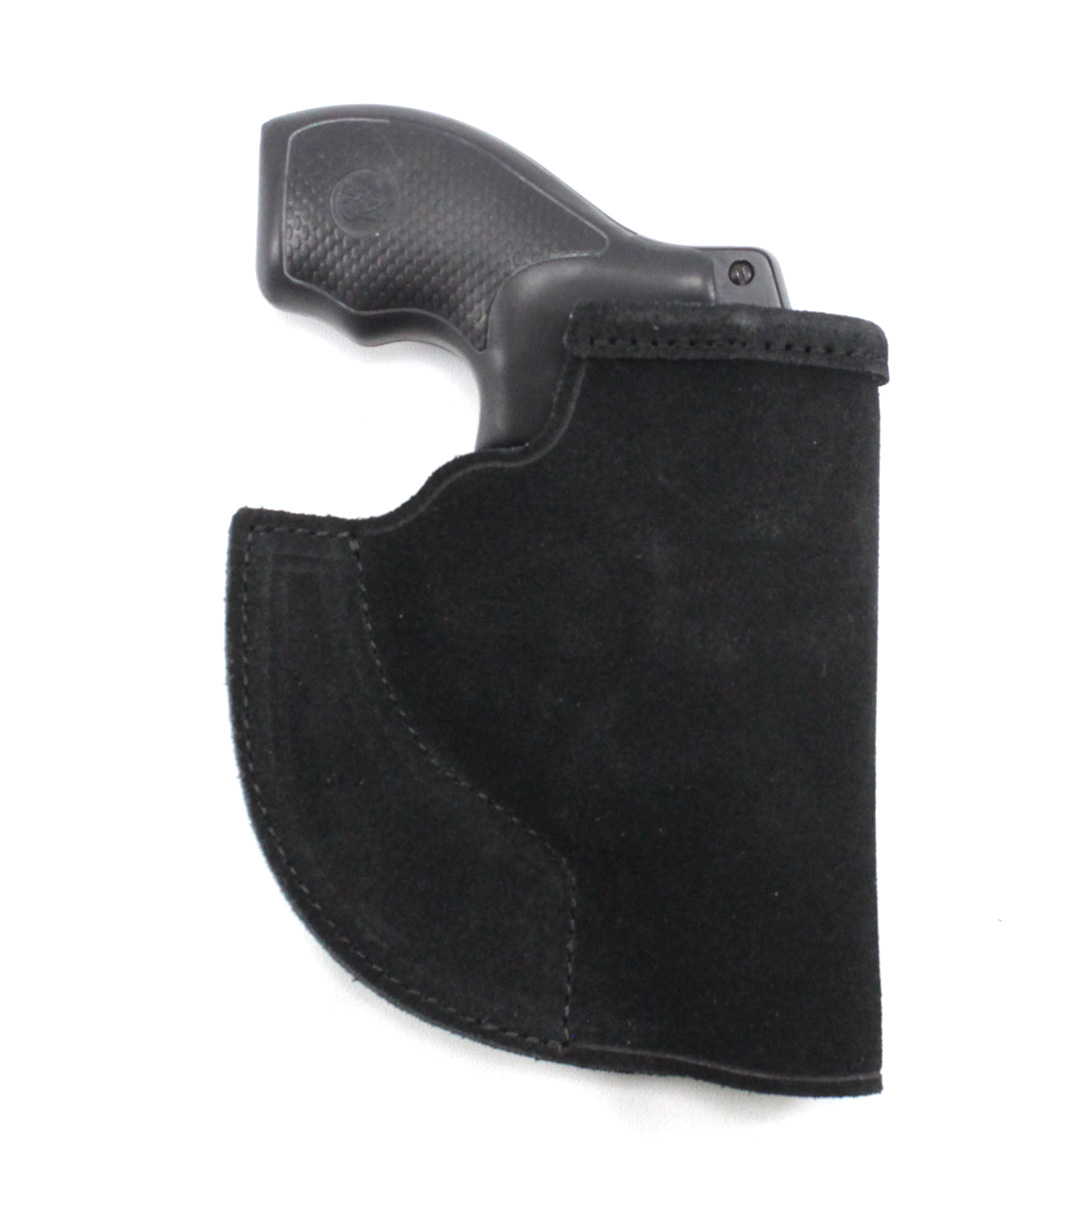 Galco Pocket Protector Holster Smith Wesson J-Frame, Kimber K6, Ruger LCR  and More